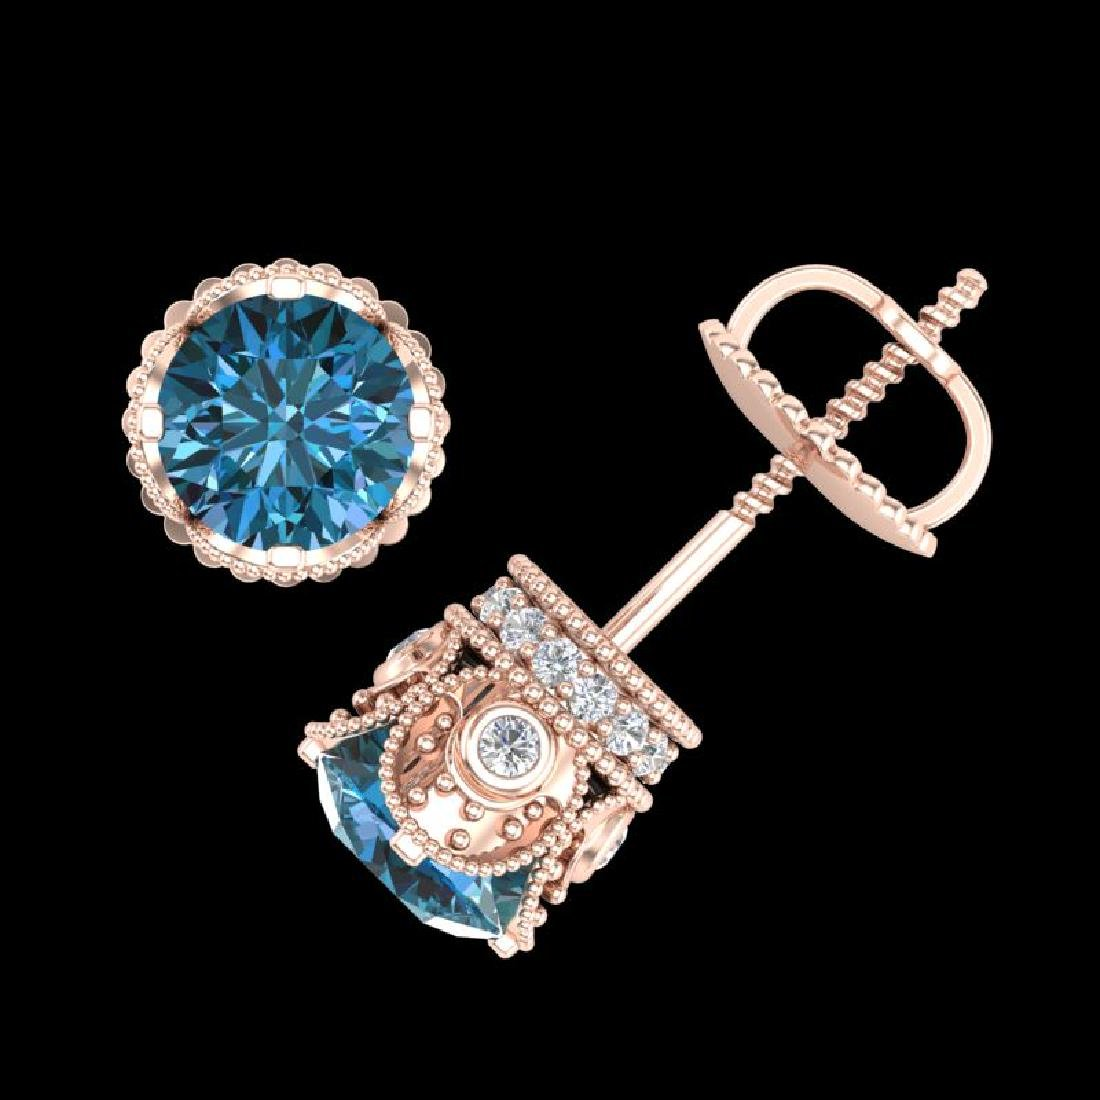 1.85 CTW Fancy Intense Blue Diamond Art Deco Stud - 3